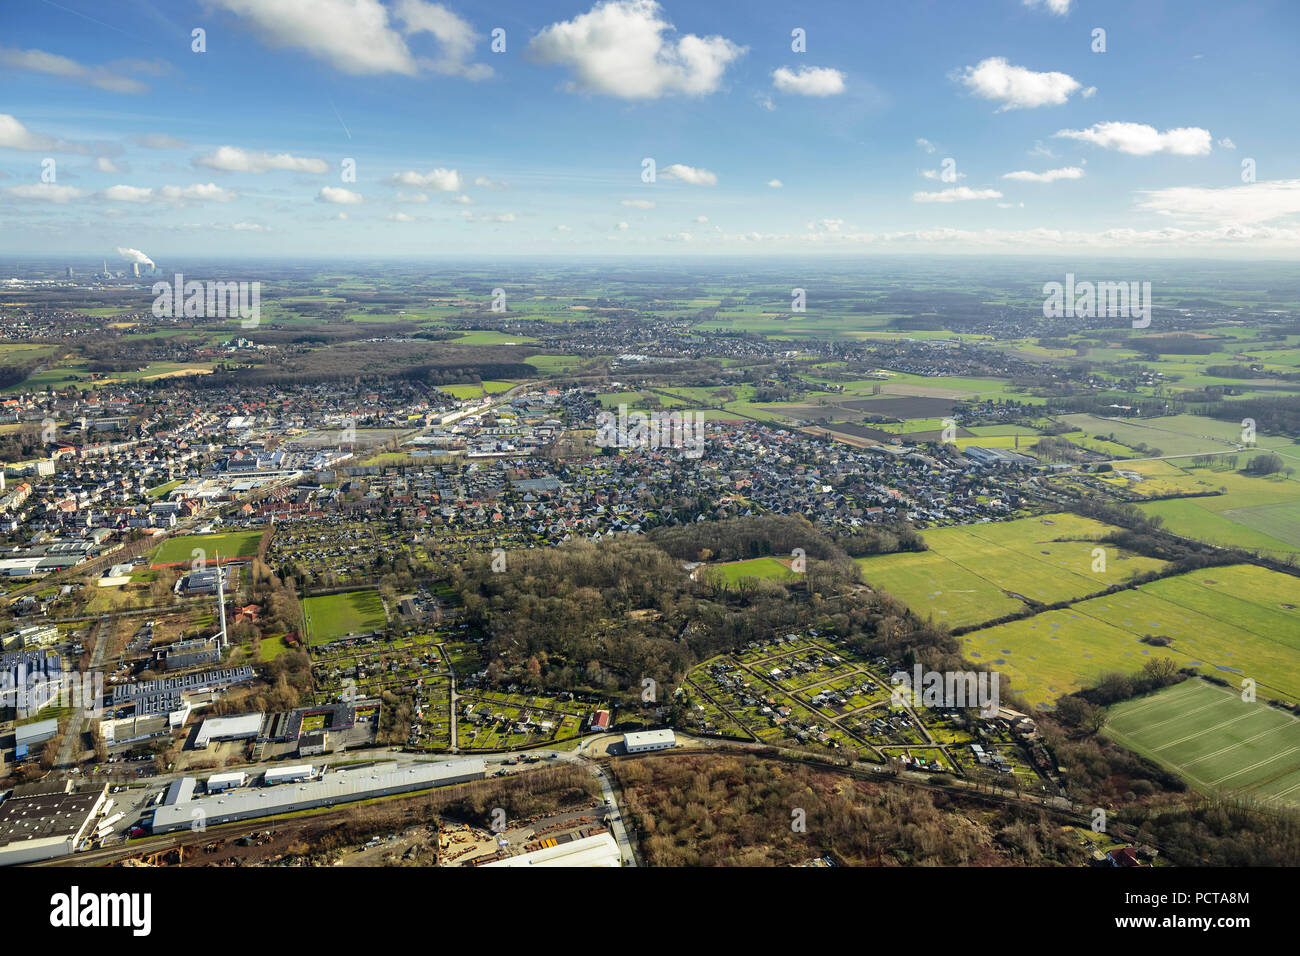 Hamm Zoo, winter pictures, aerial photo, Hamm, Ruhr area - Stock Image